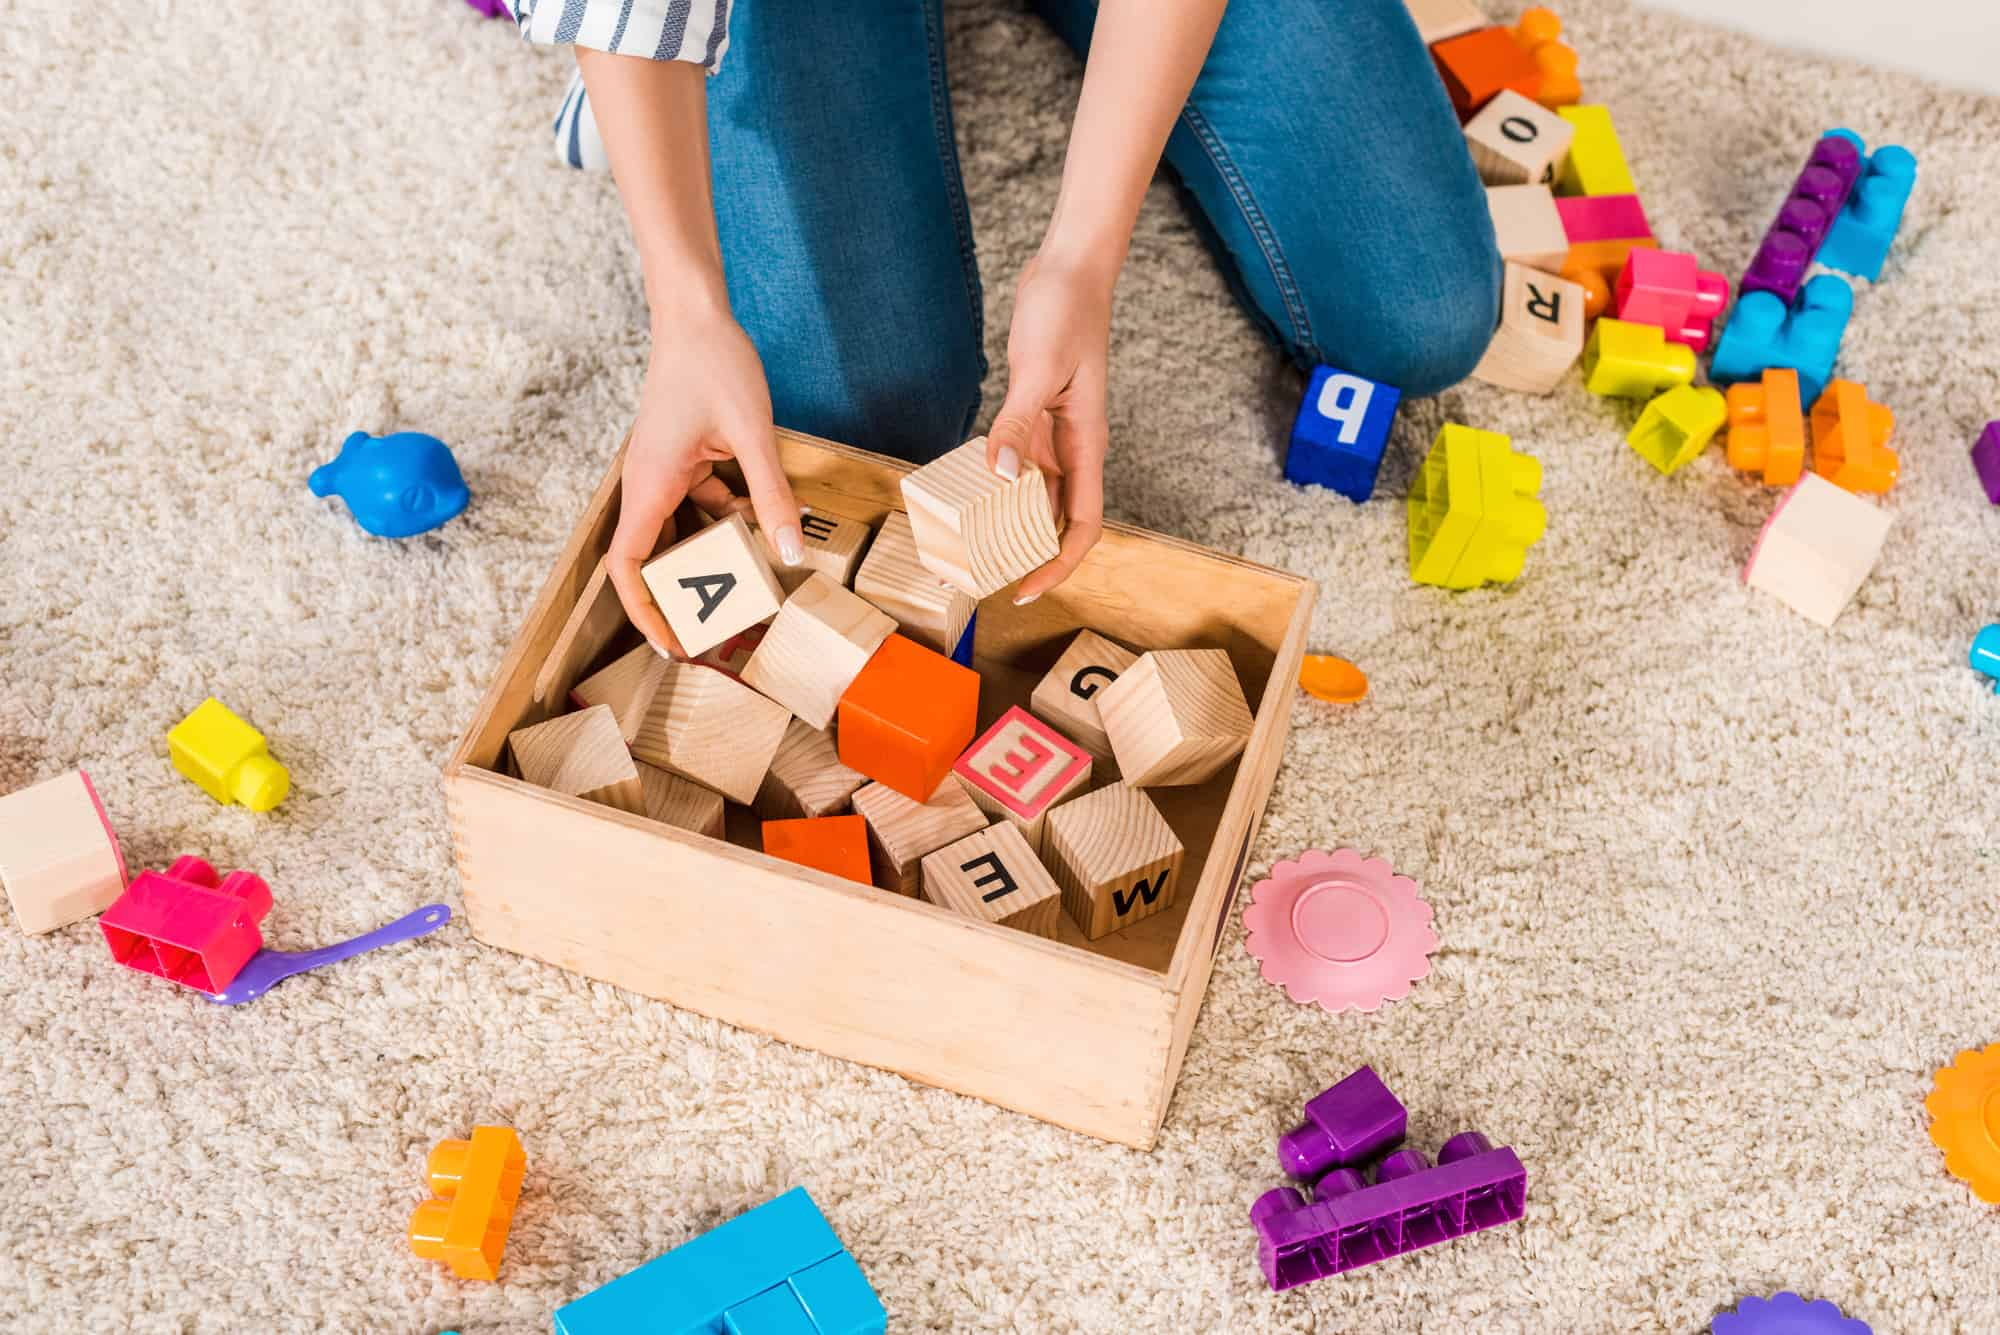 Overwhelmed by toy clutter? This simple method will teach you how to start a toy rotation system and maintain it in 10 minutes or less!